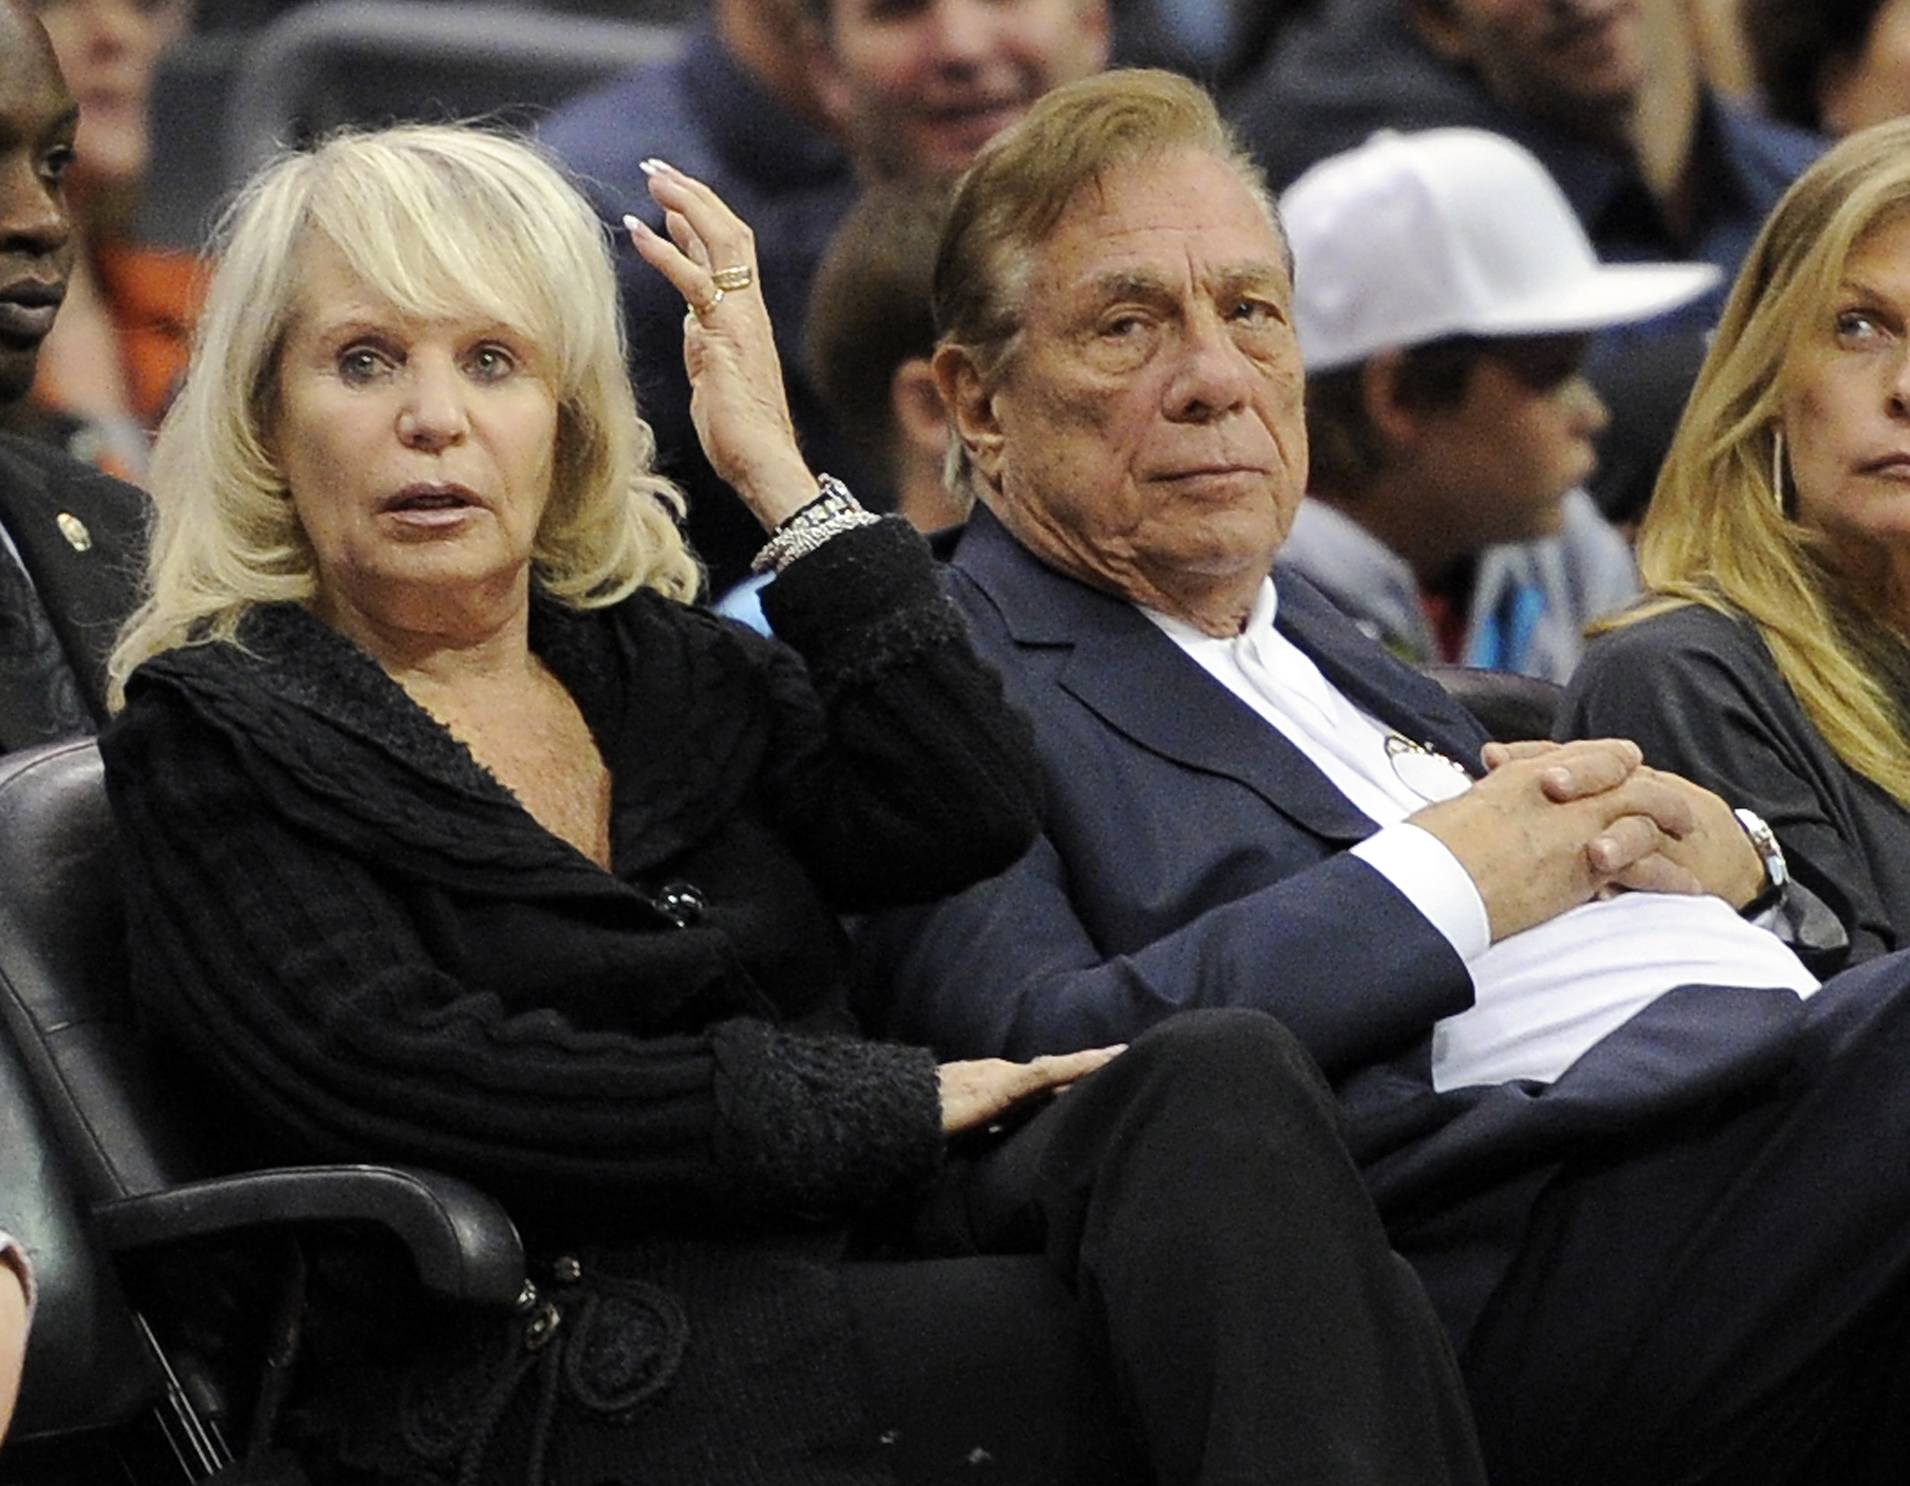 FILE - In this Nov. 12, 2010, file photo, Los Angeles Clippers owner Donald T. Sterling, right, sits with his wife Rochelle during the Clippers NBA basketball game against the Detroit Pistons in Los Angeles. An attorney representing the estranged wife of Clippers owner Donald Sterling said Thursday, May 8, 2014, that she will fight to retain her 50 percent ownership stake in the team.